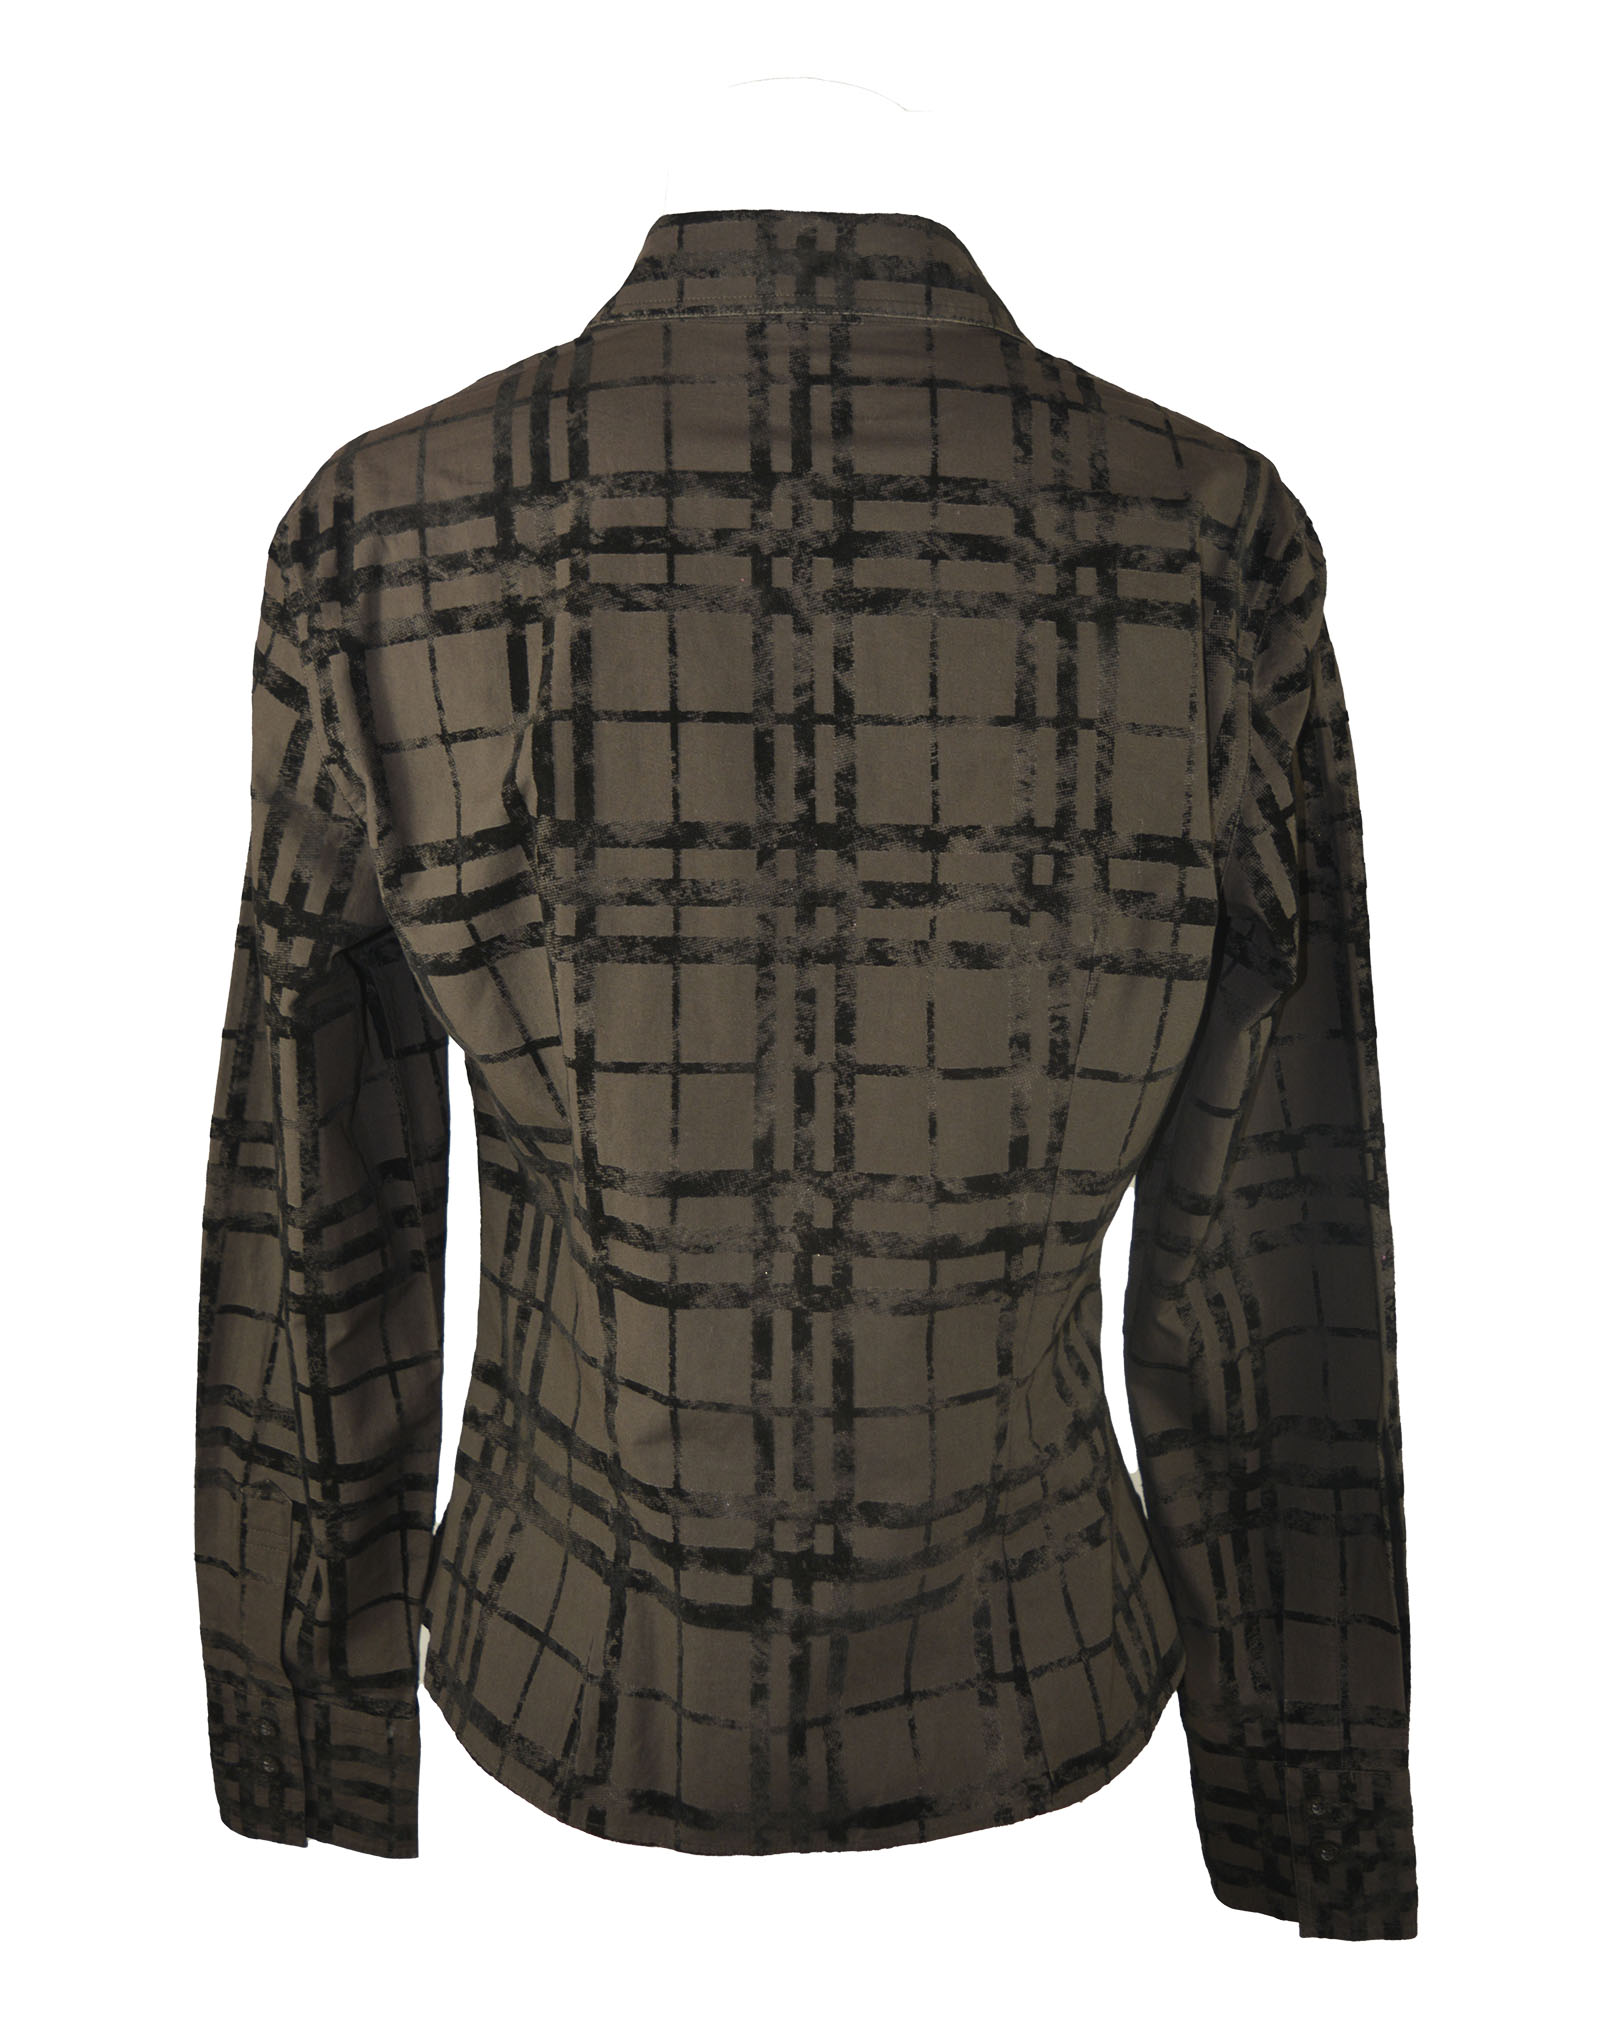 Burberry Brown Check Pattern Shirt with Velvet Details Size 40 (EU)